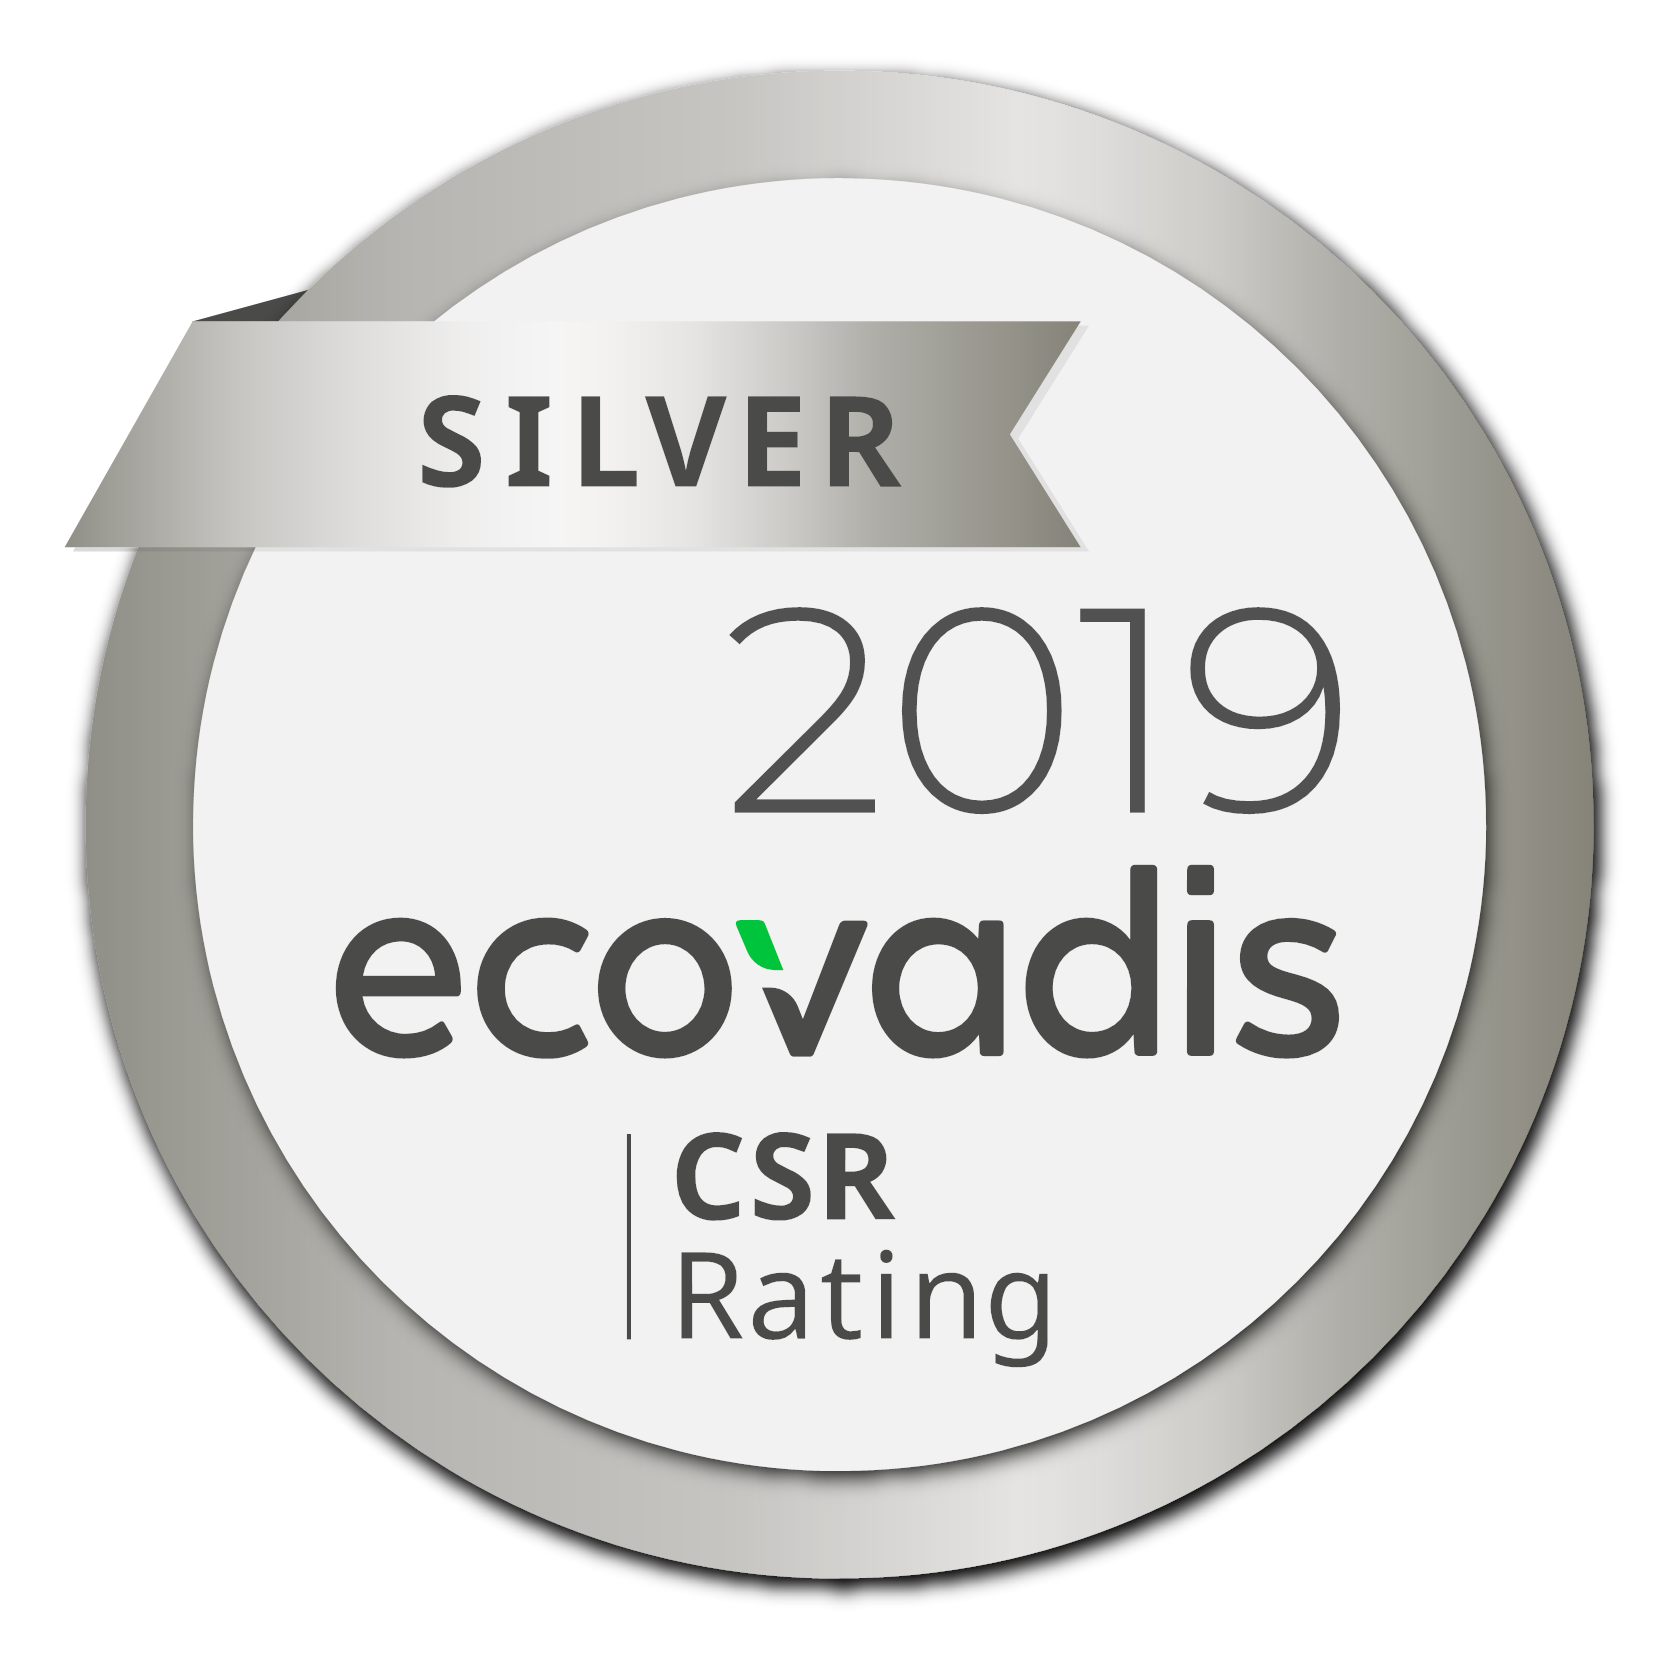 A Silver rating puts Eco Guar Group in the Top 30% of suppliers.